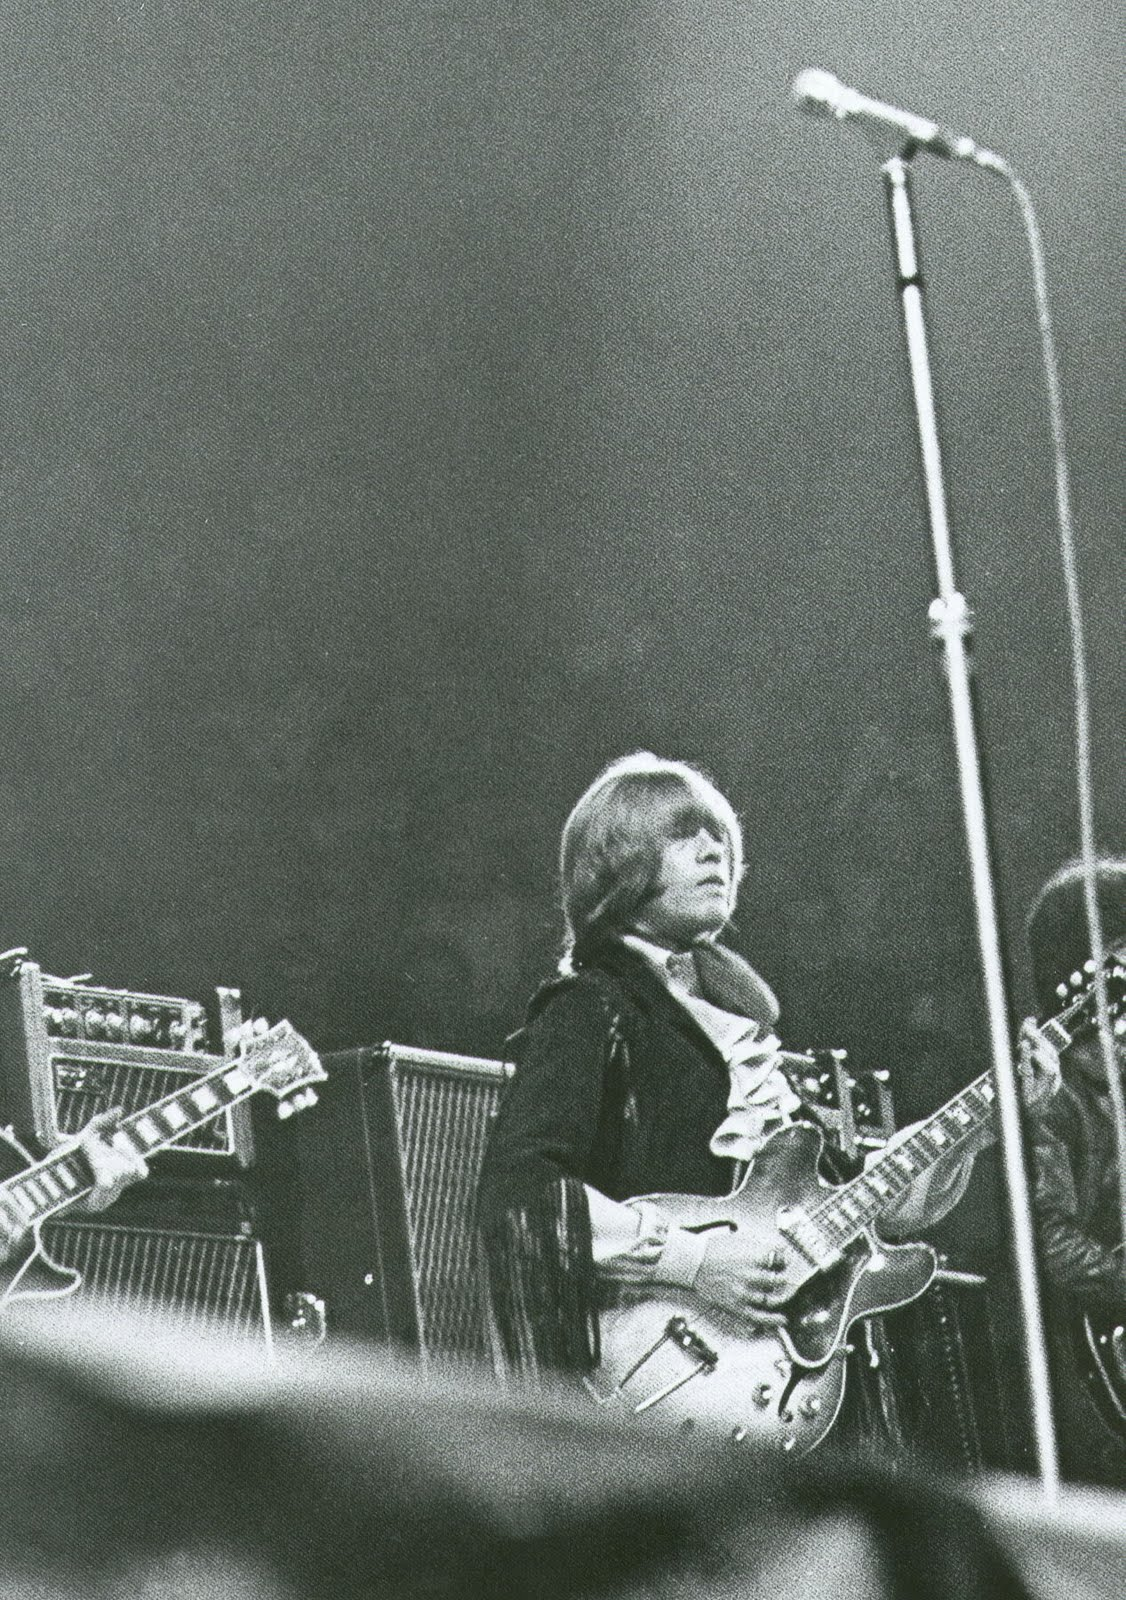 Vox Ac100s Used By The Stones 1965 1968